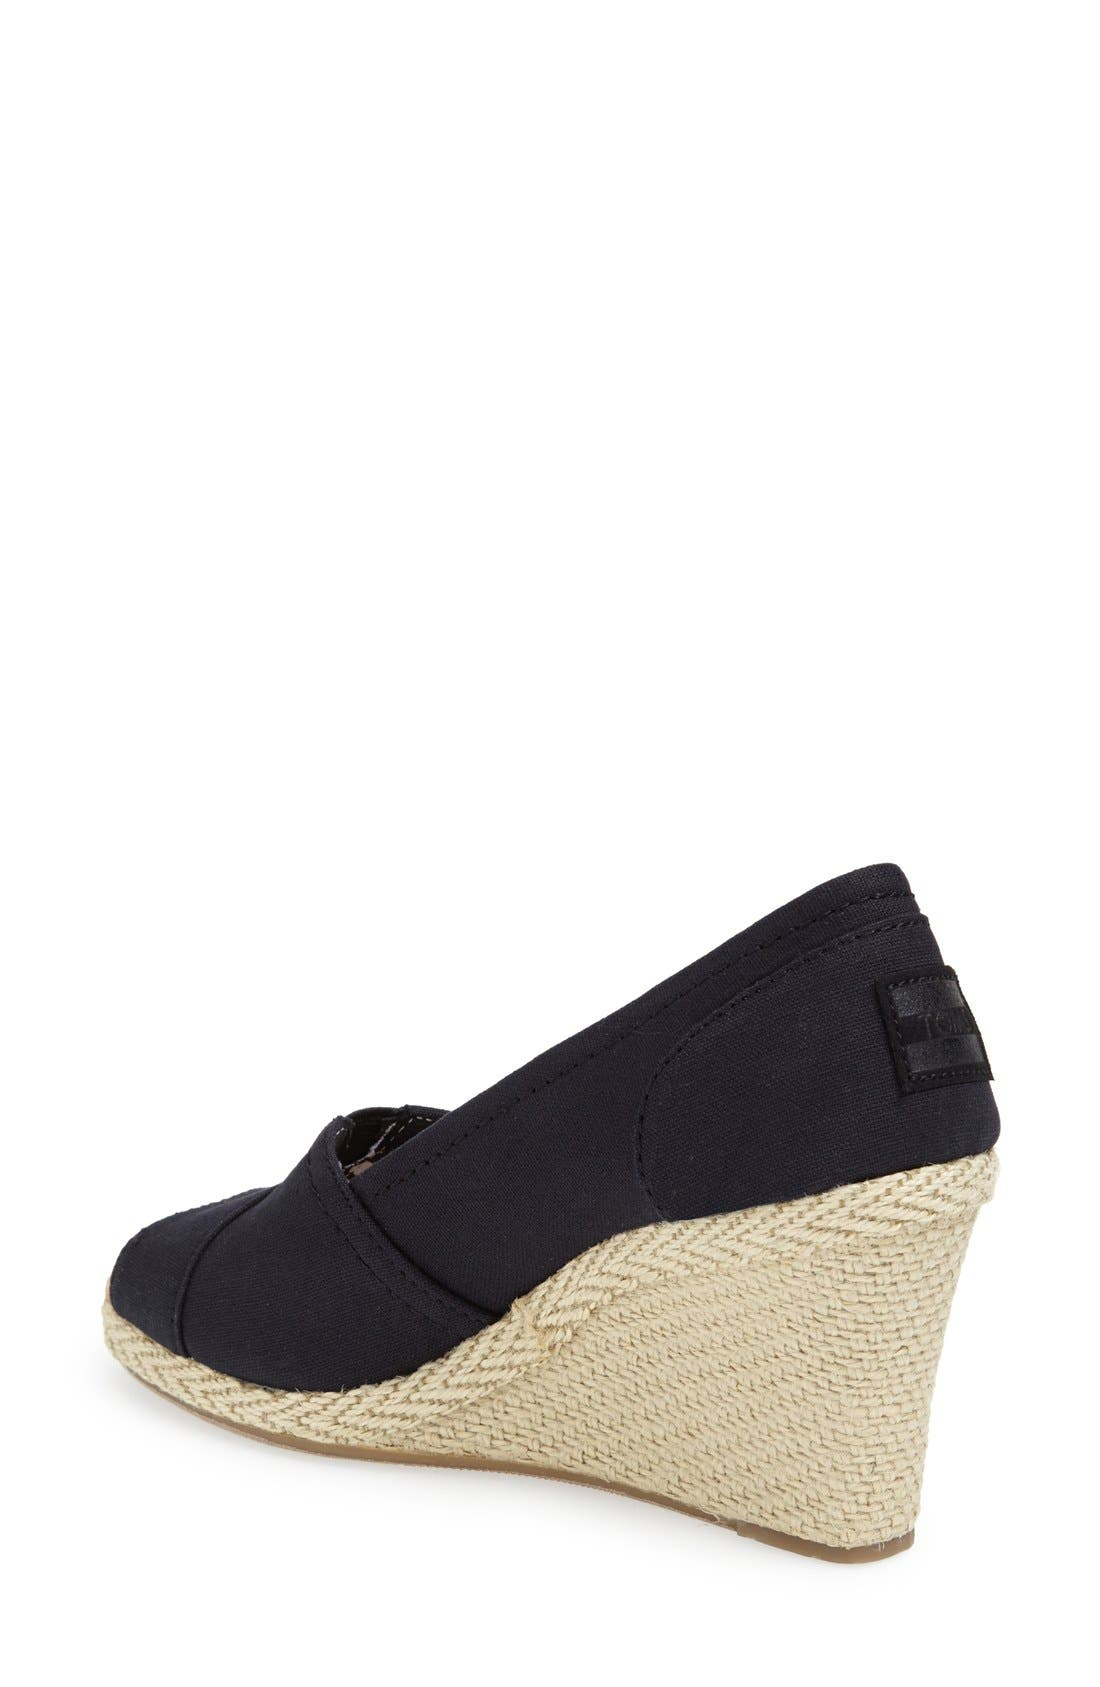 Alternate Image 2  - TOMS 'Calypso' Canvas Wedge